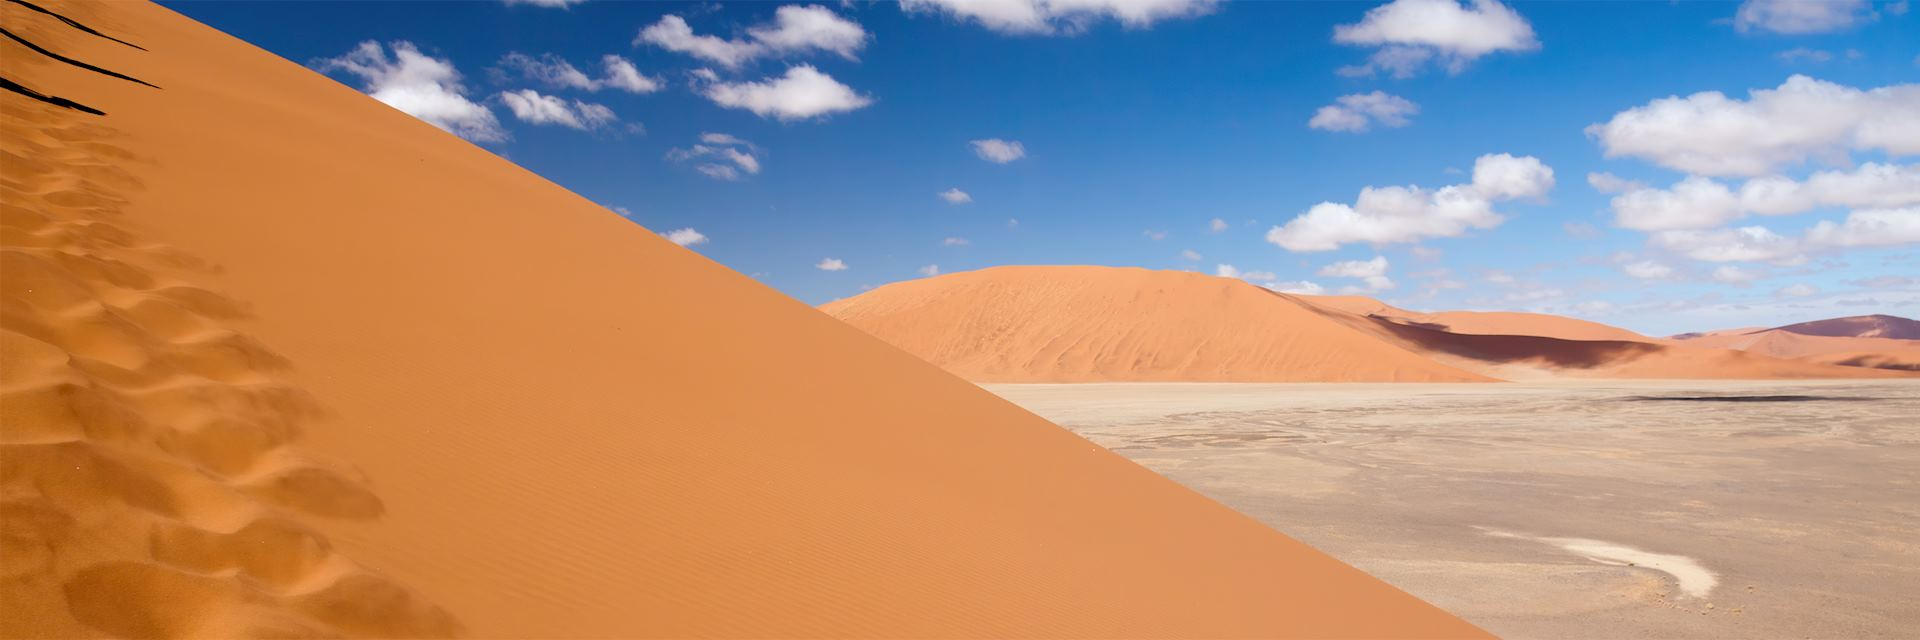 The dunes at Sossusvlei in Namibia